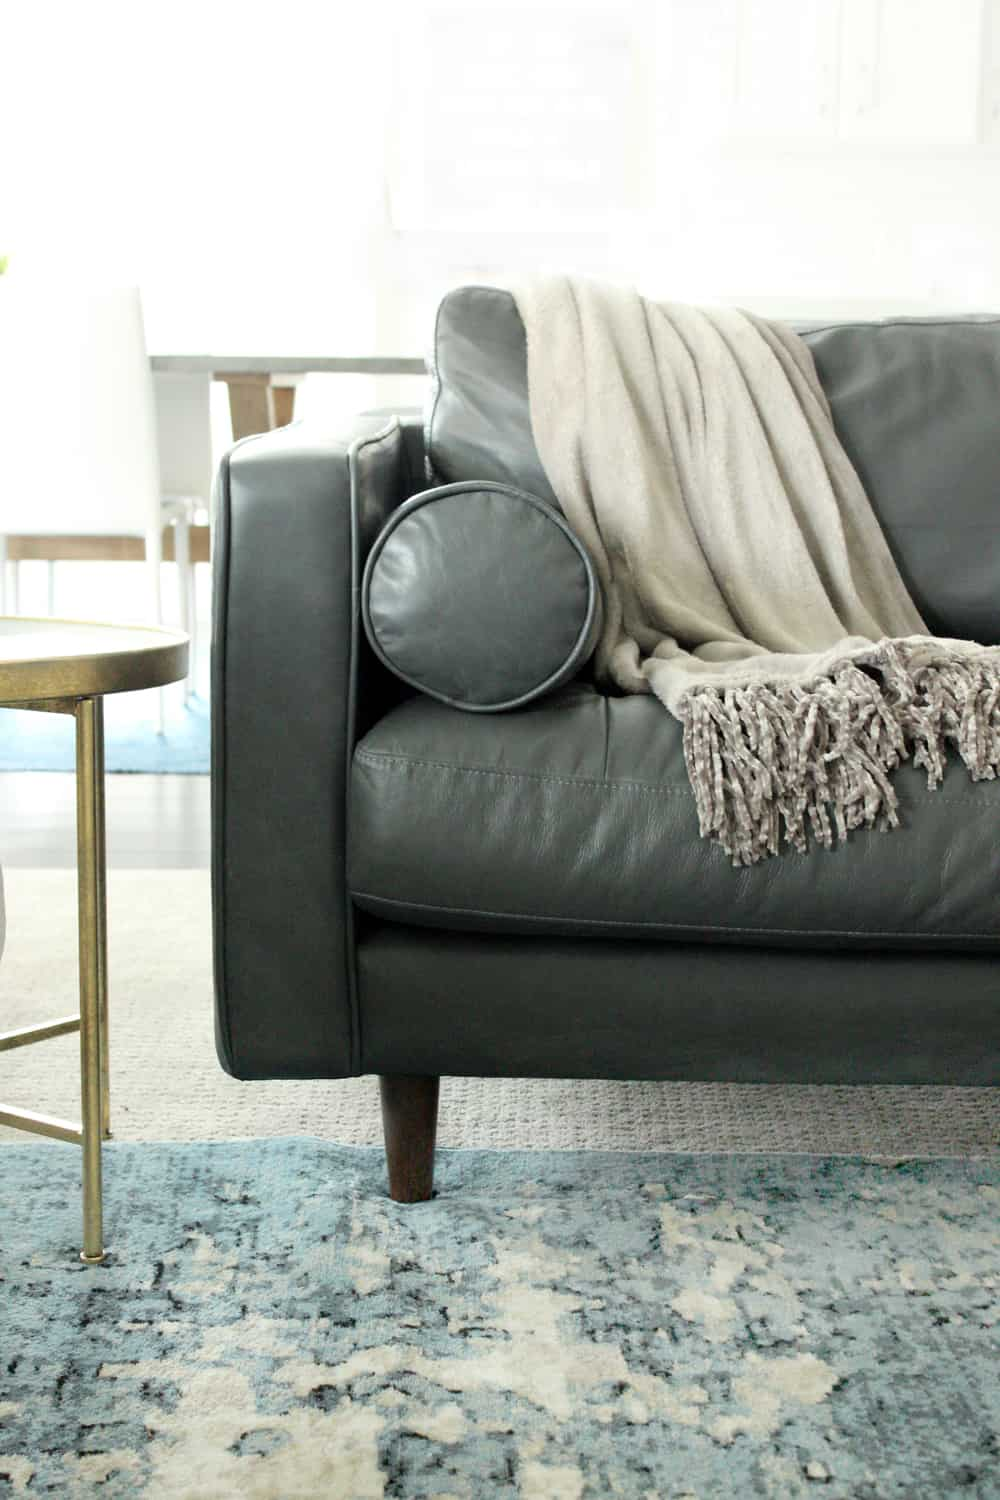 I'm totally in love with this cozy, modern living room space! It makes the most out of the size, and pairs looks and functionality so well! Great prices, too!